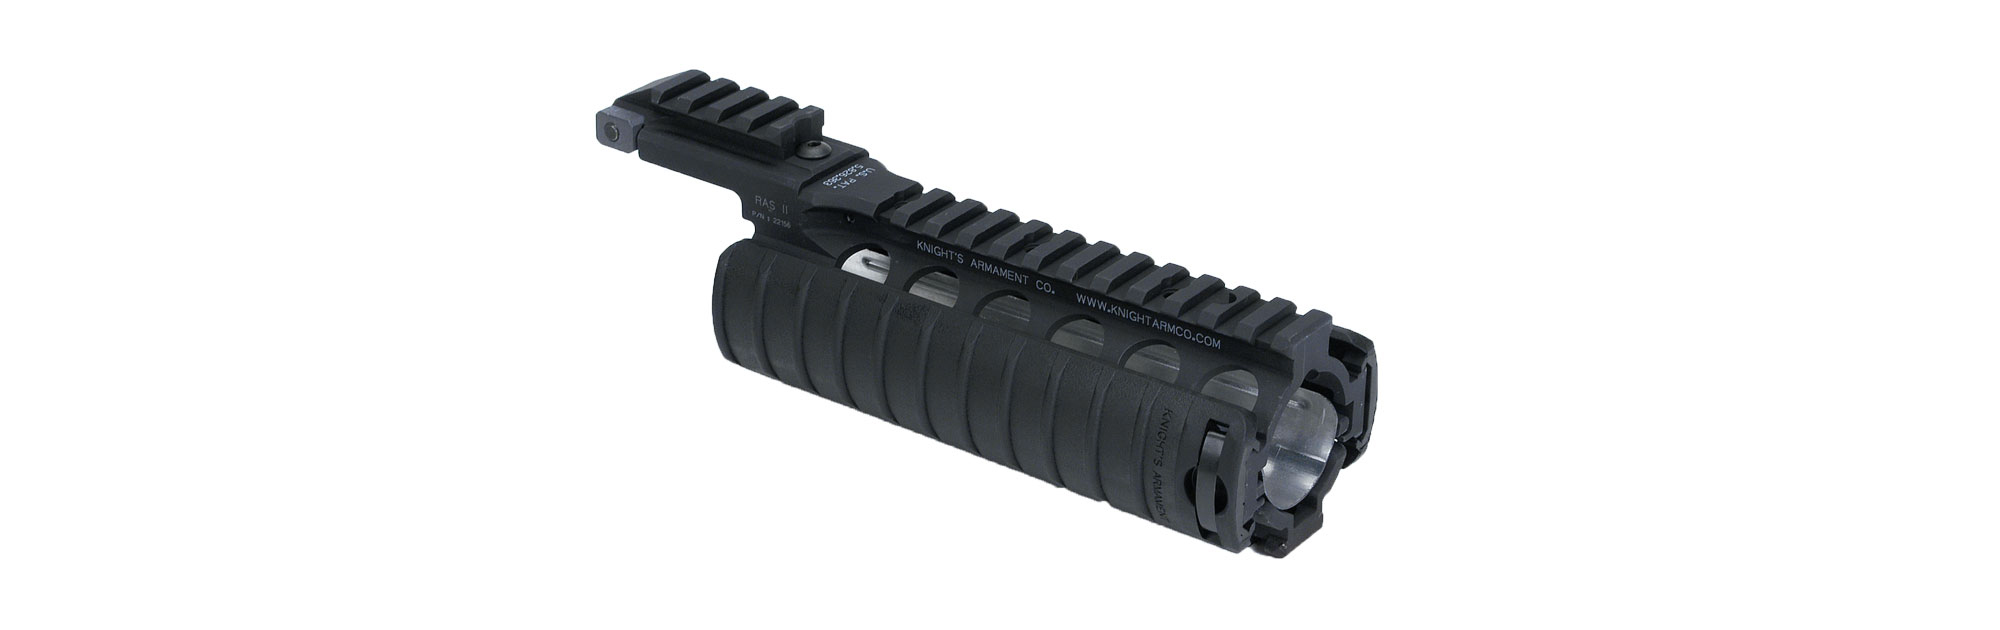 Free Float Ras Ii Forend Assembly Knight S Armament